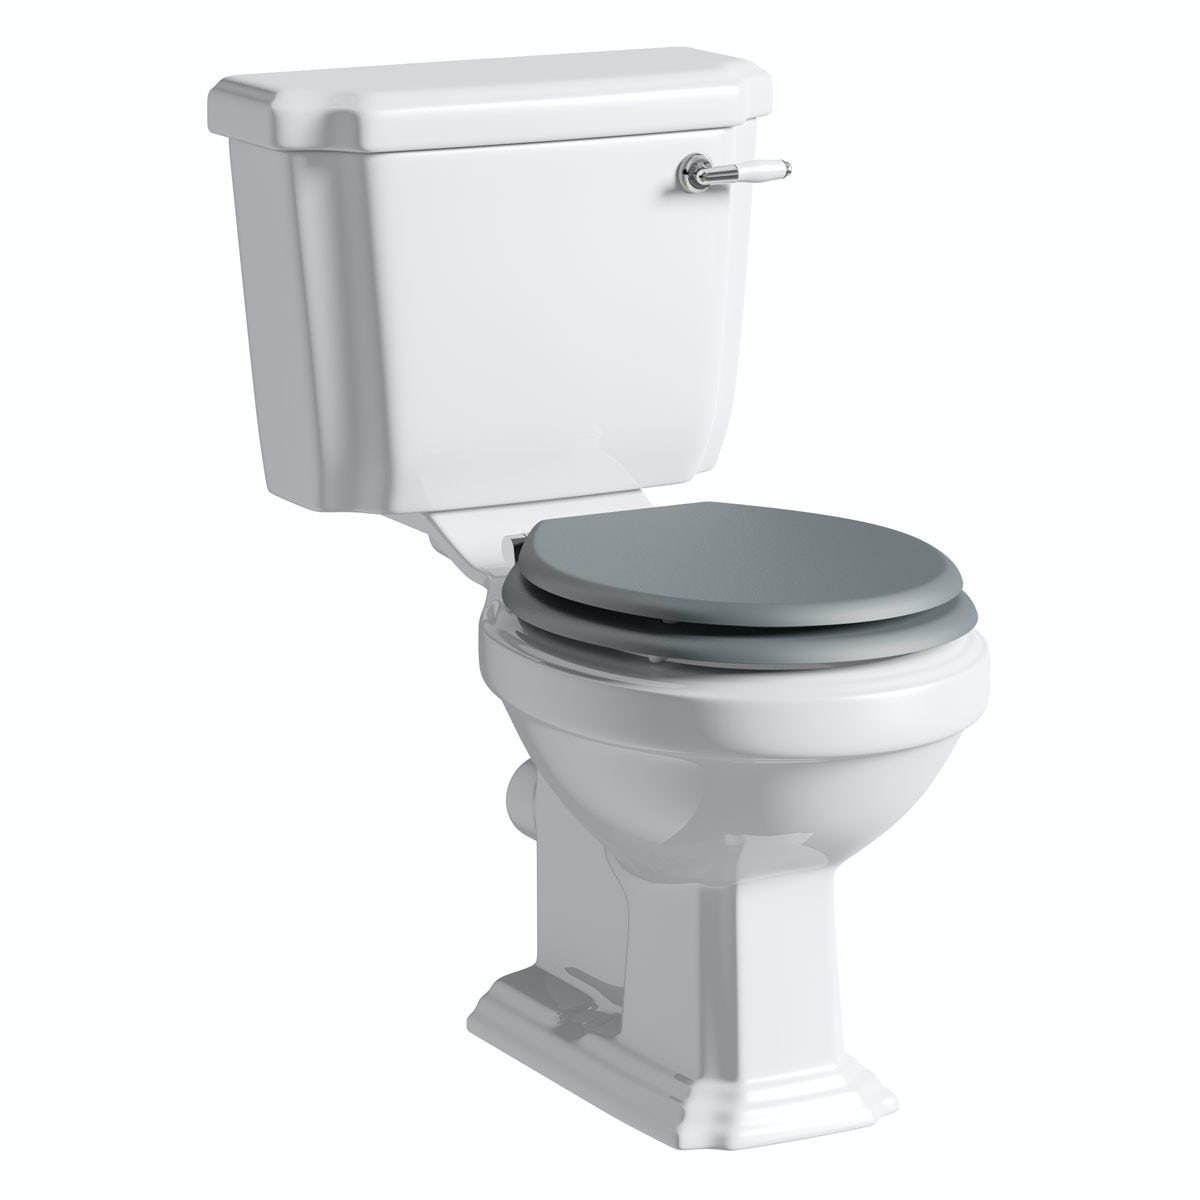 The Bath Co. Dulwich close coupled toilet inc grey soft close seat